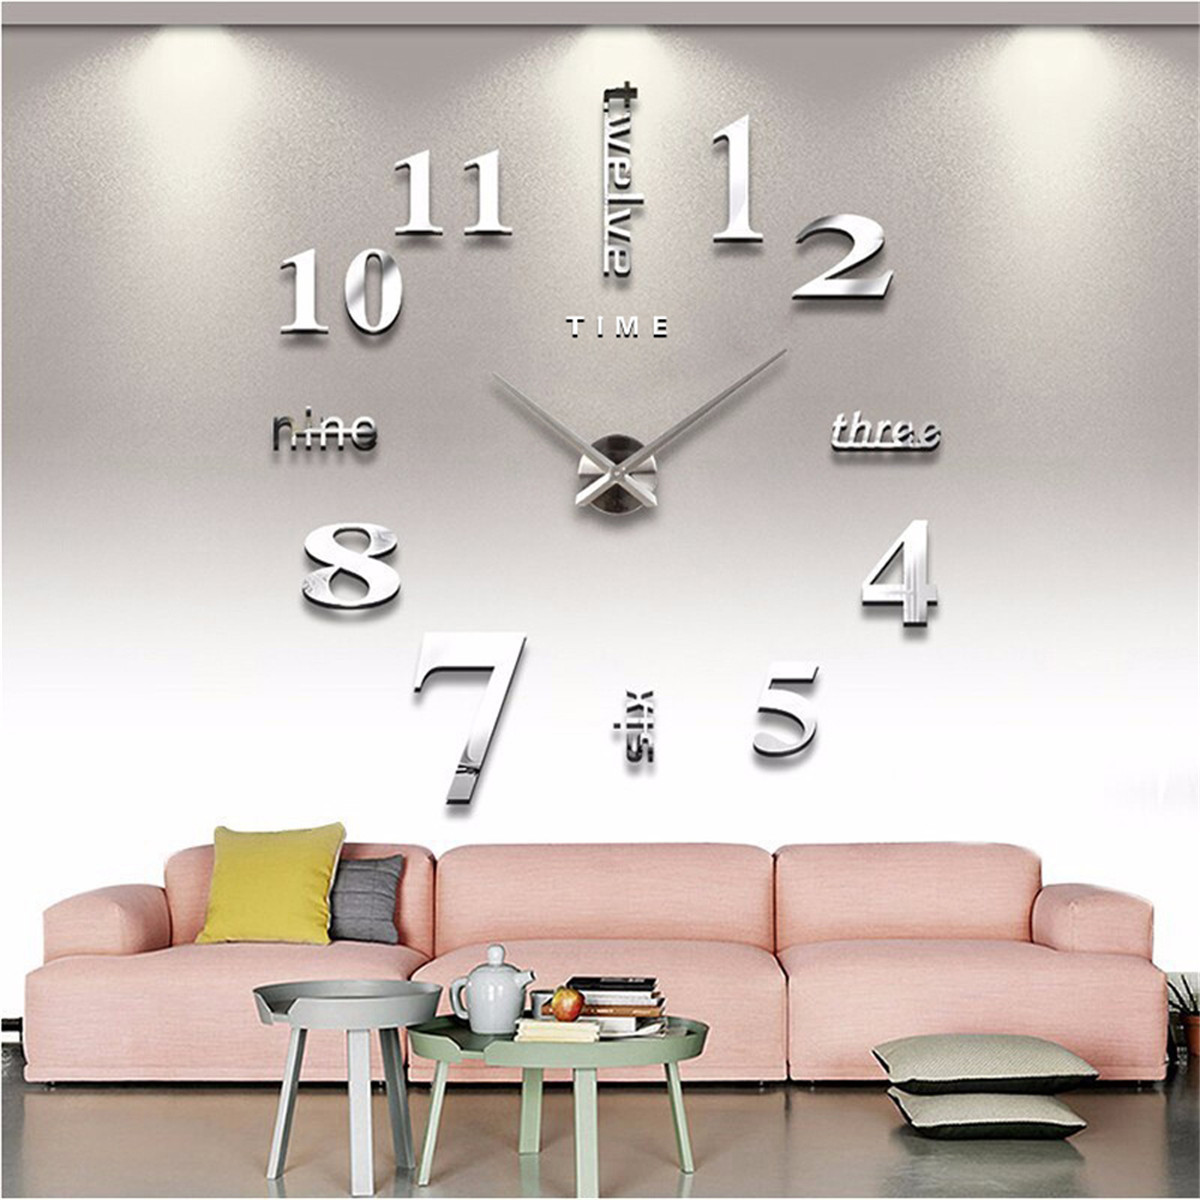 3D Wall Clock Mirror Wall Stickers Creative DIY Wall Clocks Removable Art Decal Sticker Home Decor Living Room Quartz Needle Hot